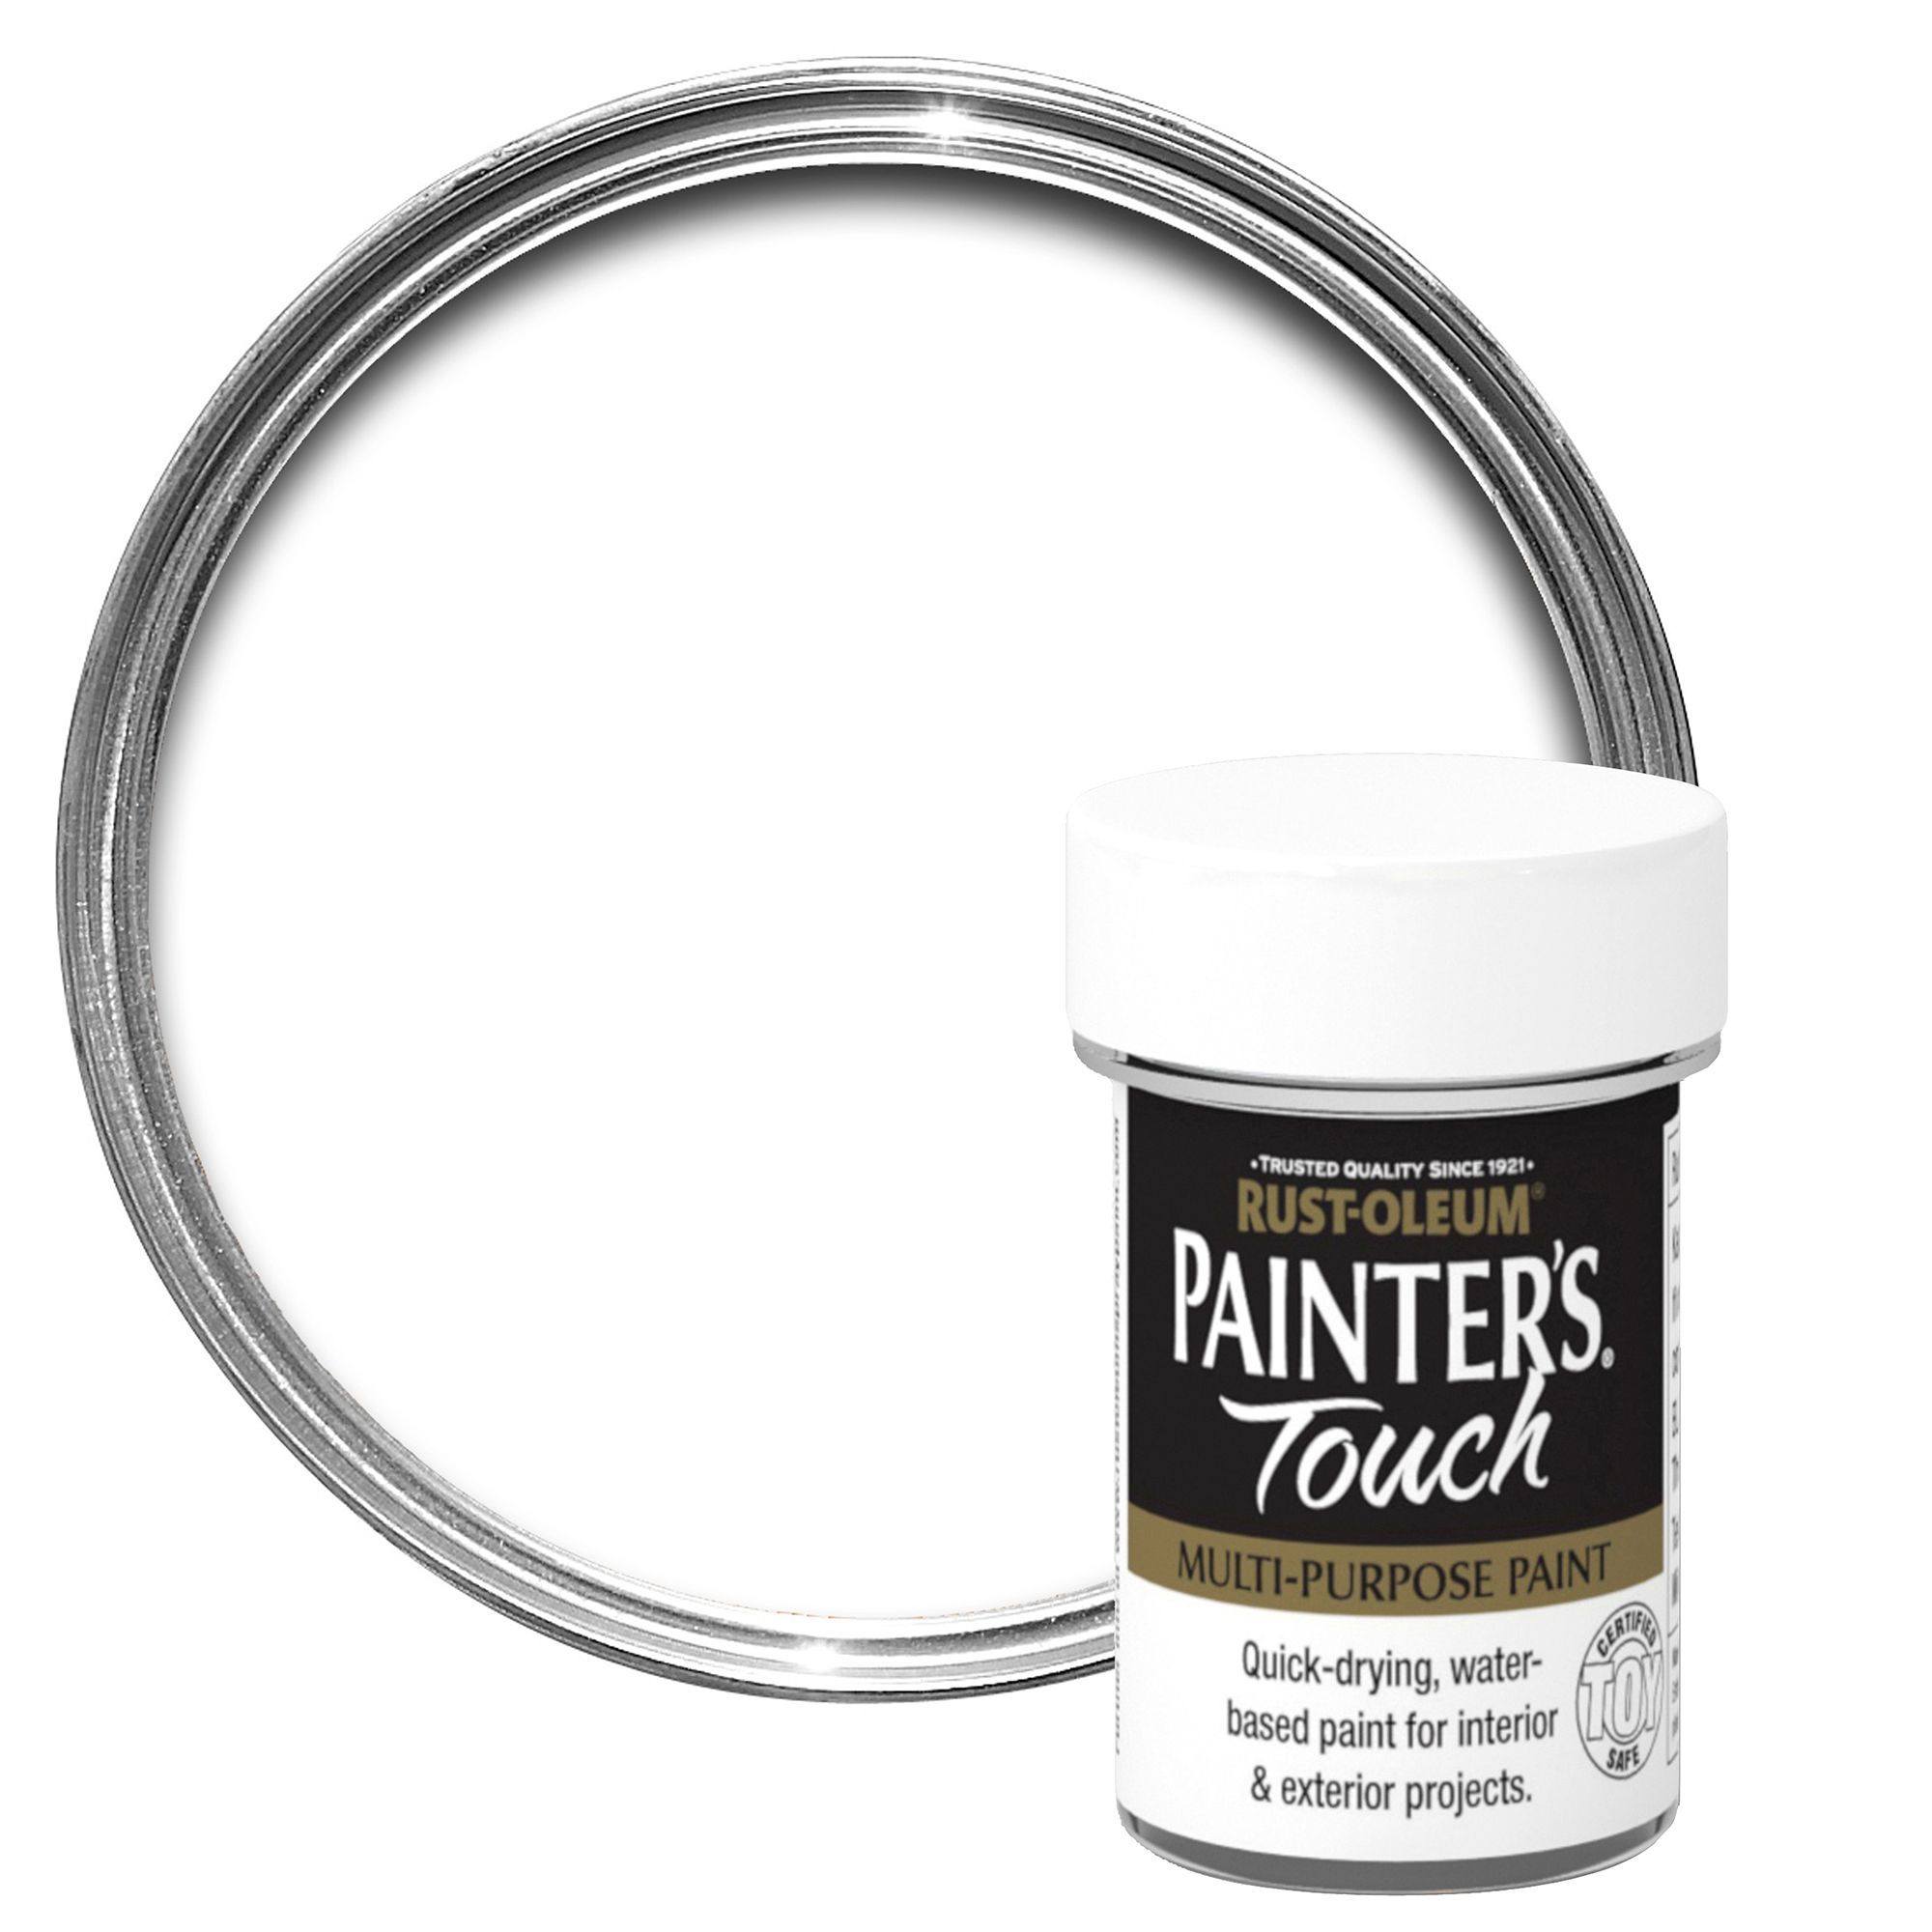 Rust-oleum Painter's Touch Interior & Exterior White Matt Multipurpose Paint 20ml